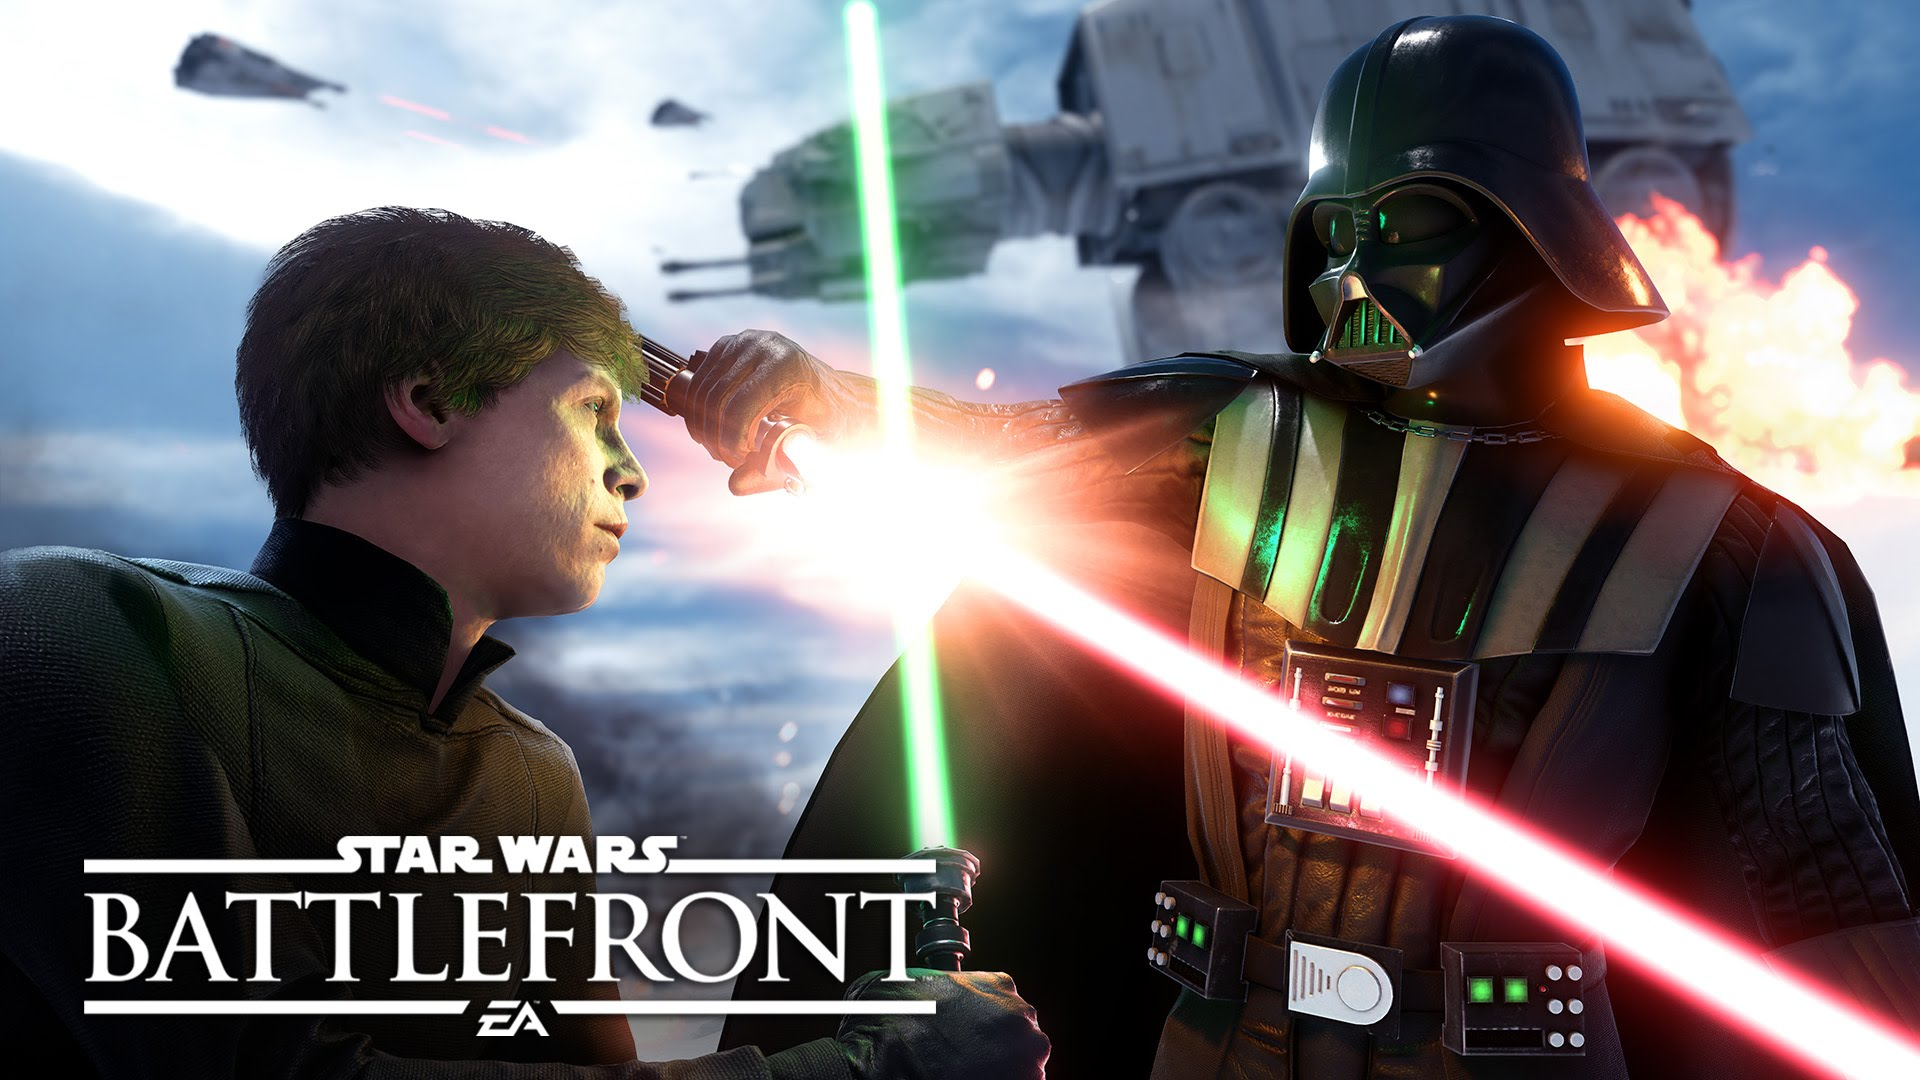 Star Wars Battlefront HD Wallpapers